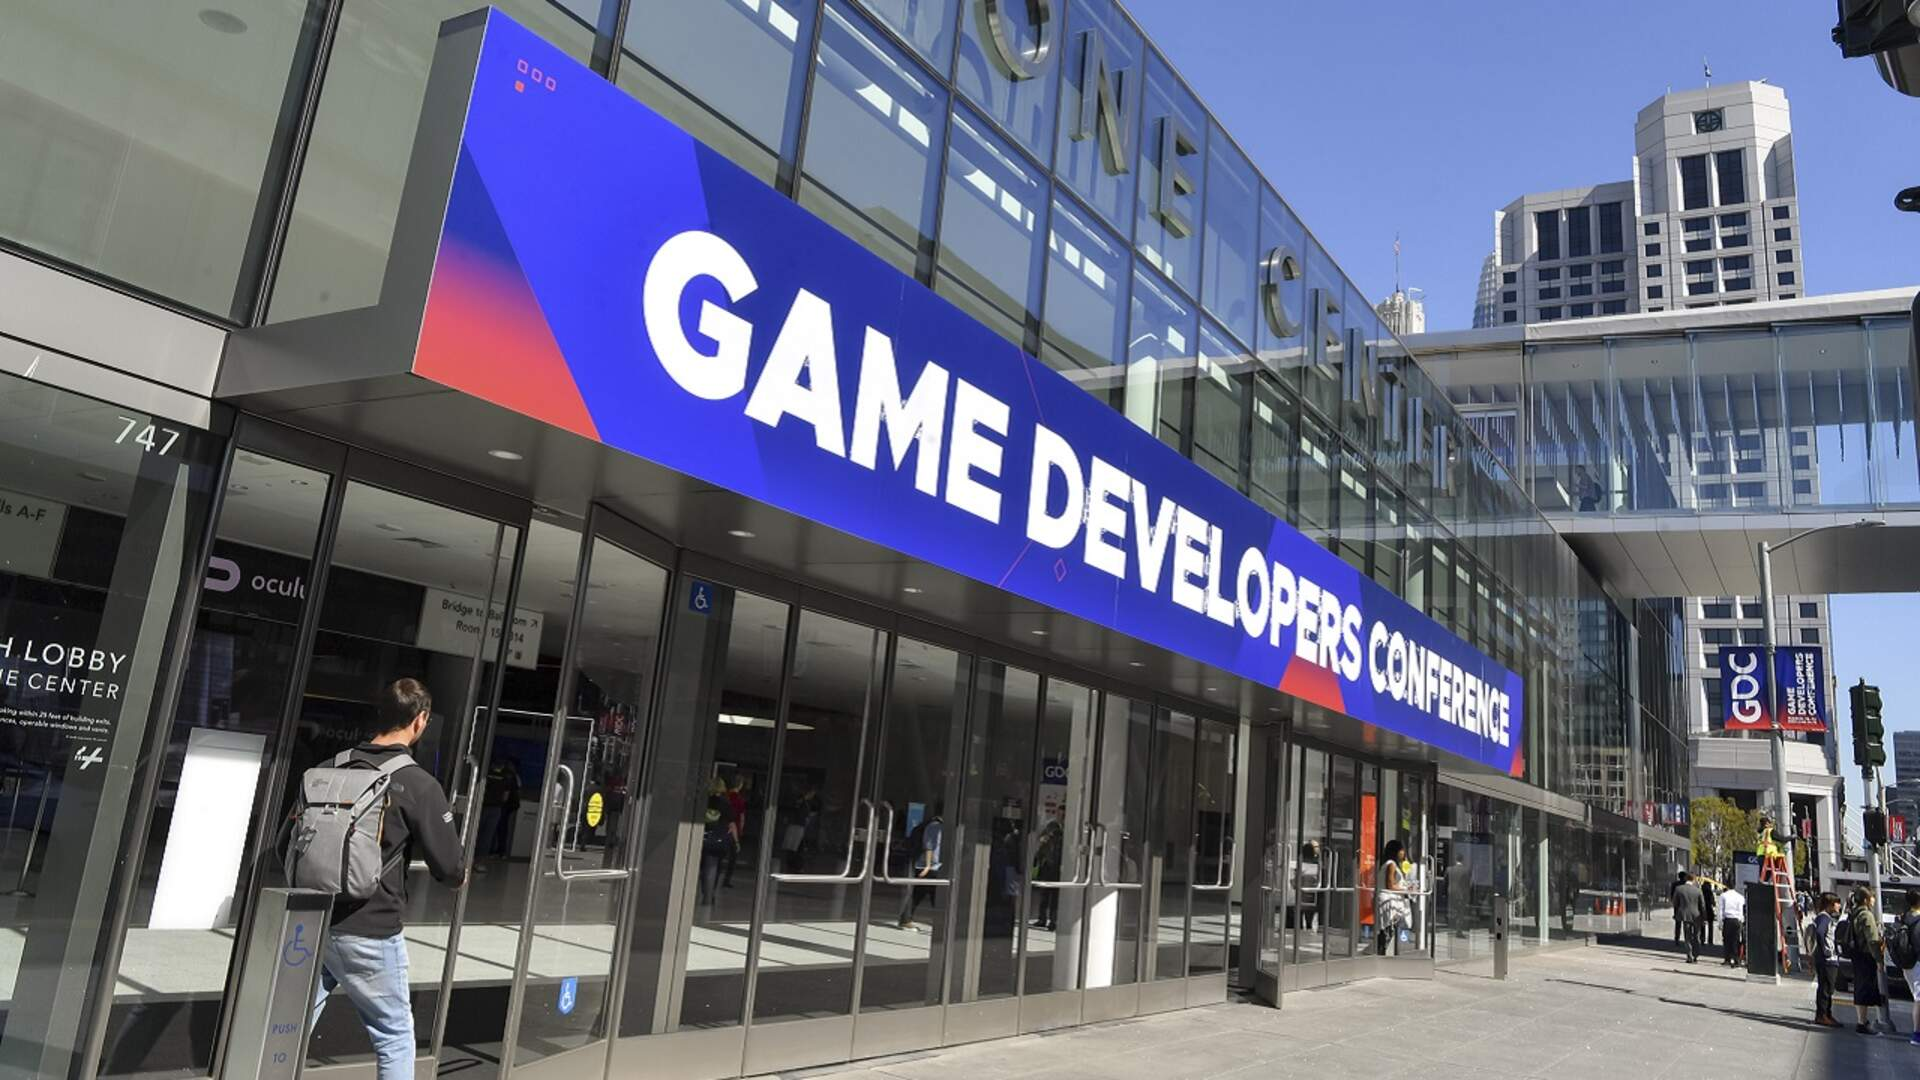 USG Notebook: Some of Gaming's Biggest Shows Have Been Upended by the Coronavirus